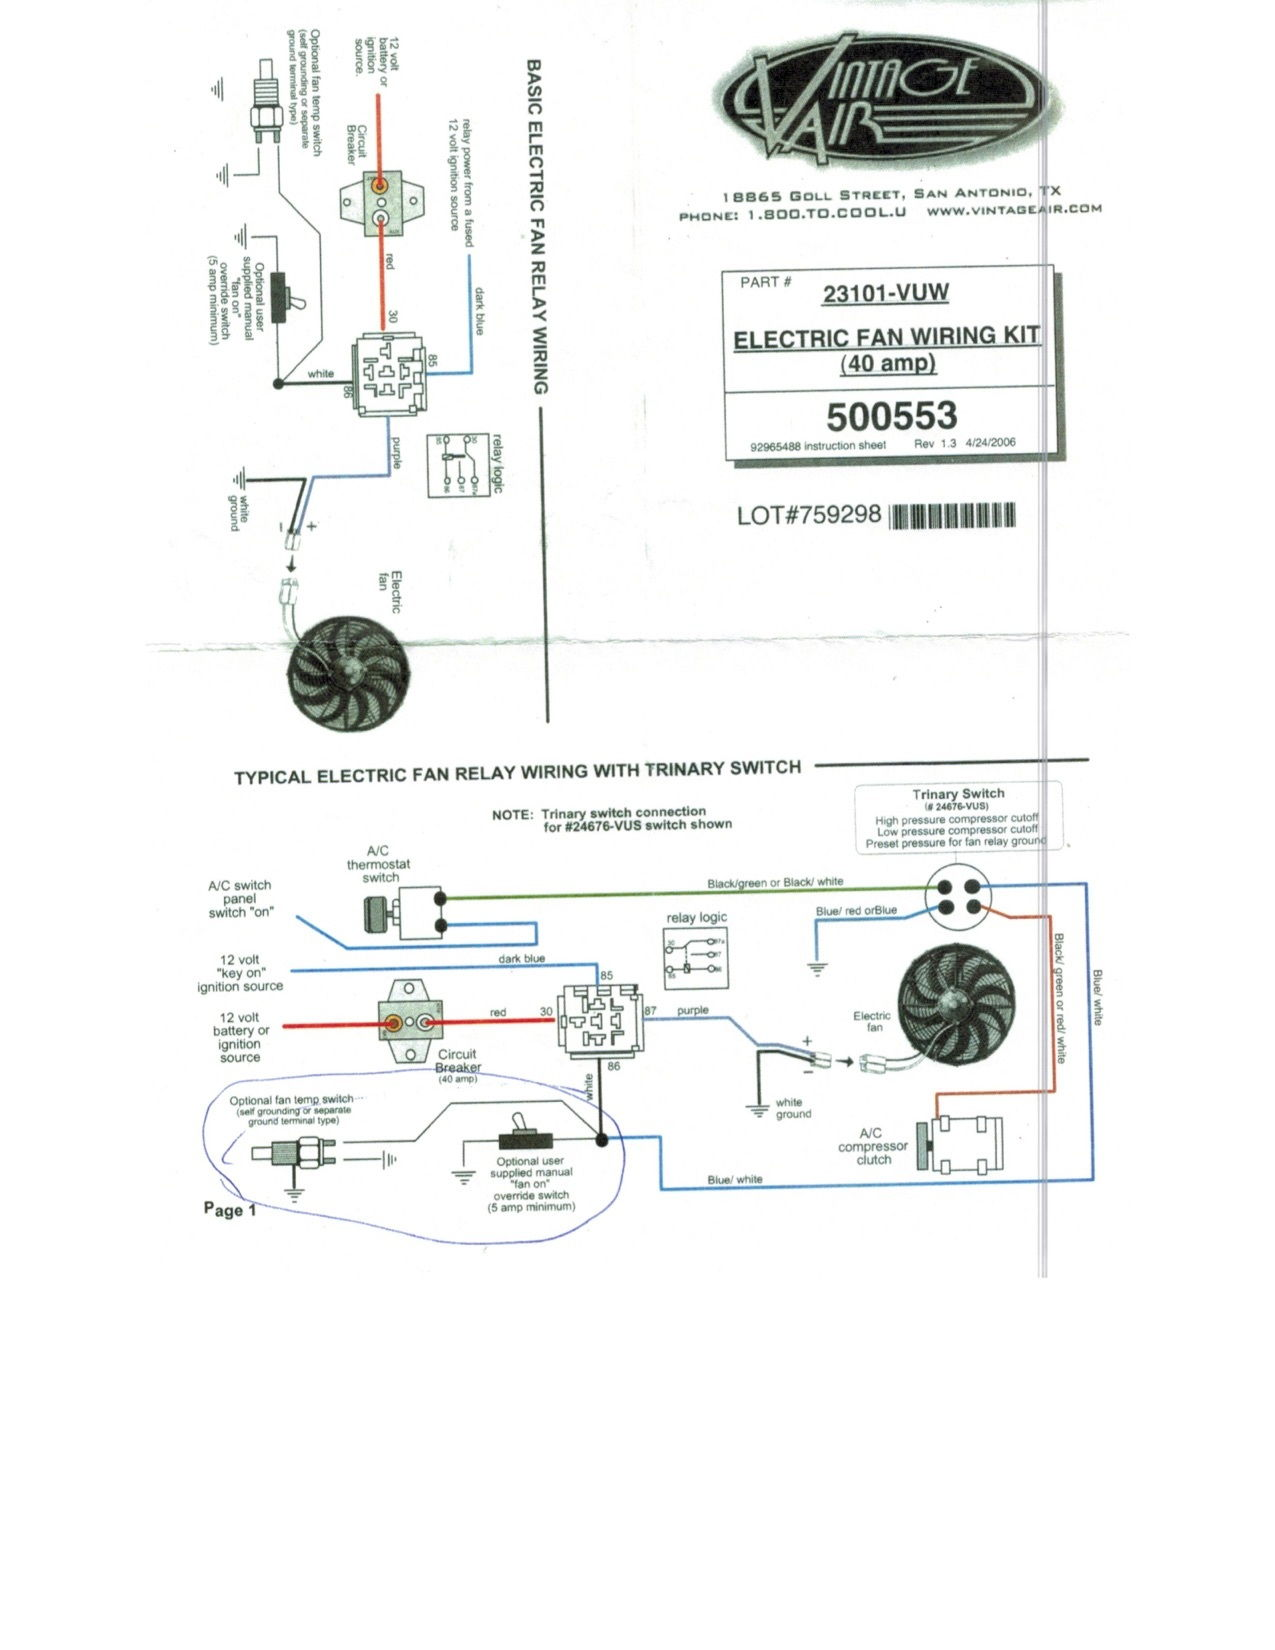 Trinary Switch Wiring Diagram Dryer Wiring Diagram Wiring